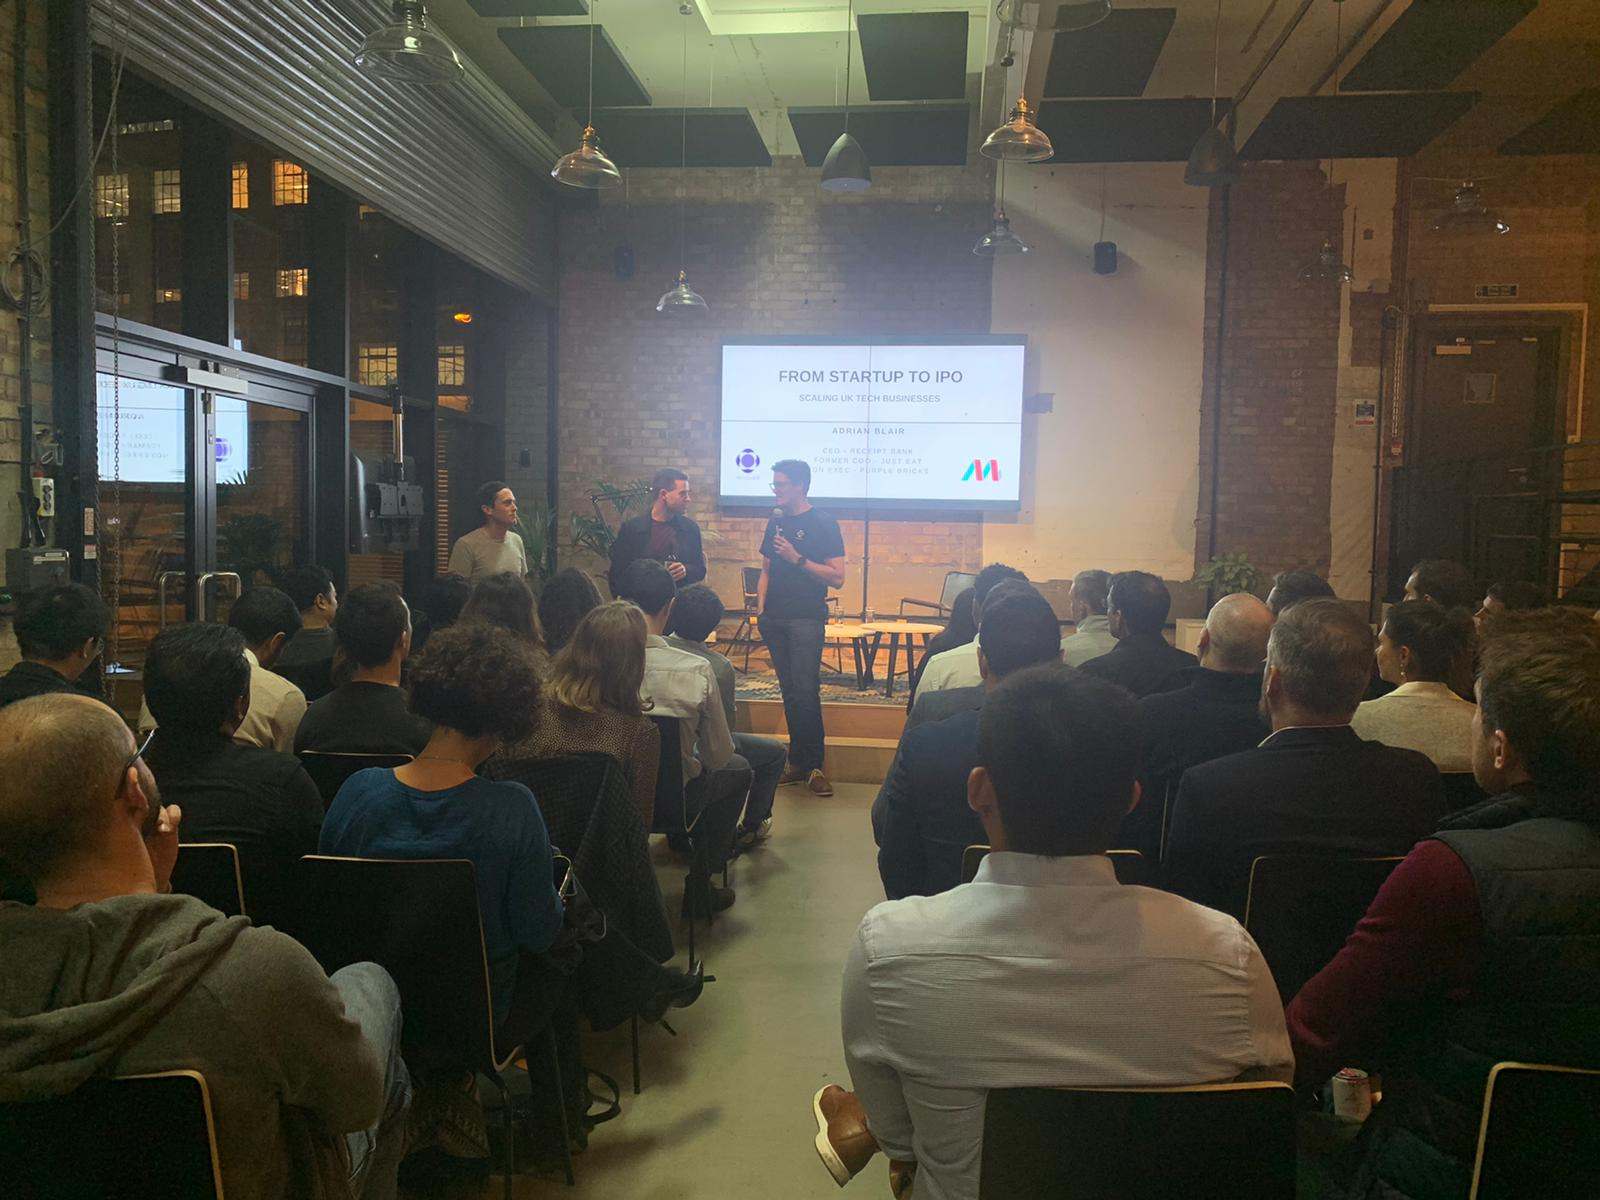 movemeon freelance event startup to ipo consulting